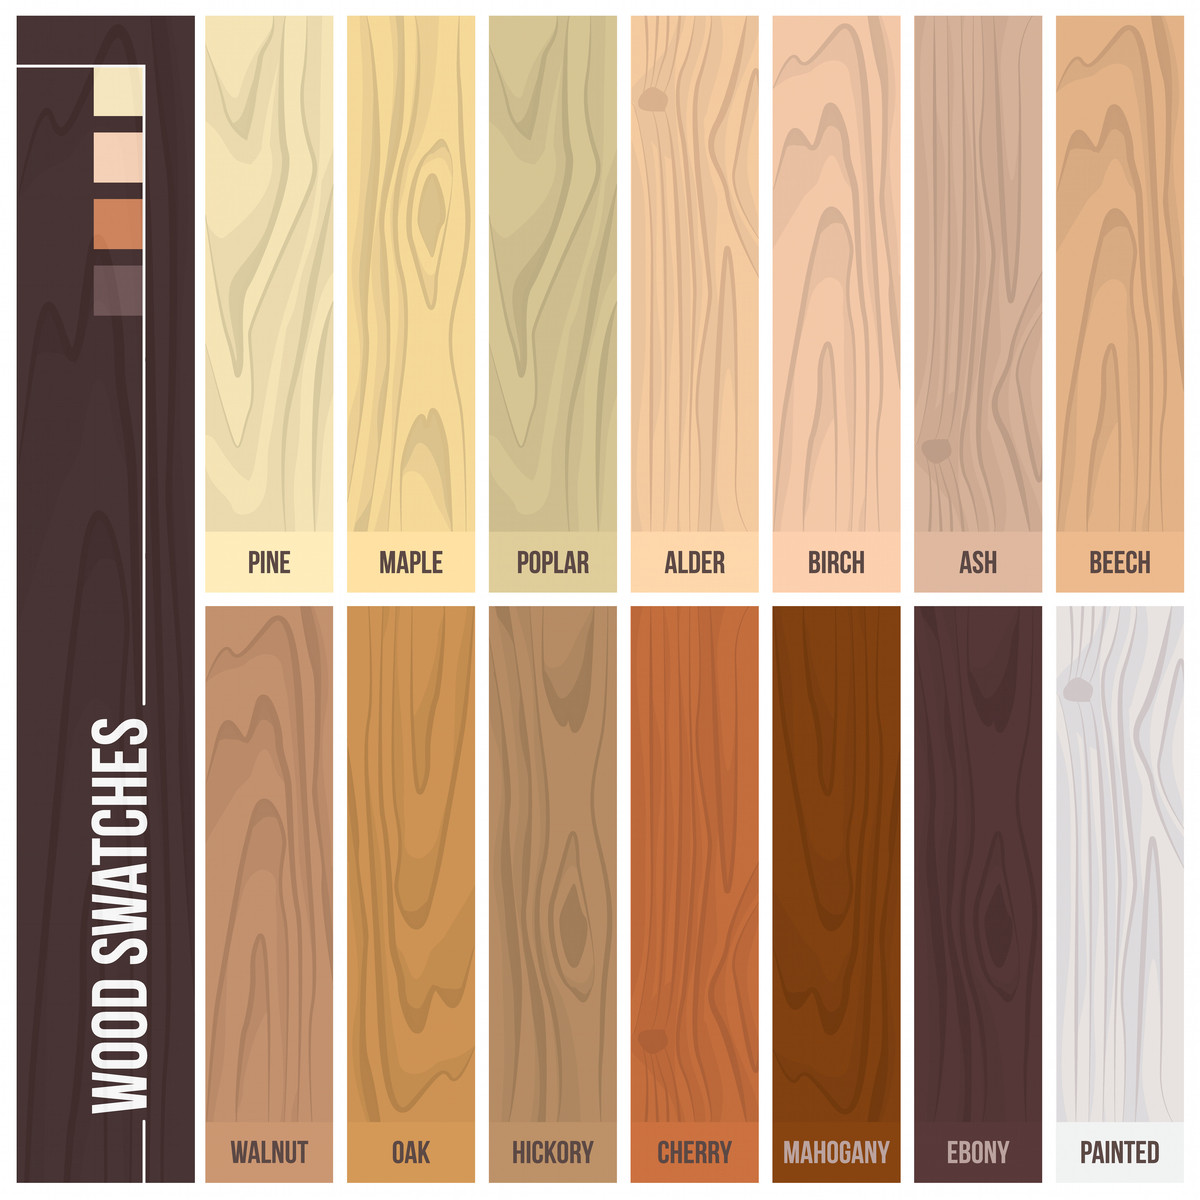 how much hardwood floor cost of 12 types of hardwood flooring species styles edging dimensions with types of hardwood flooring illustrated guide